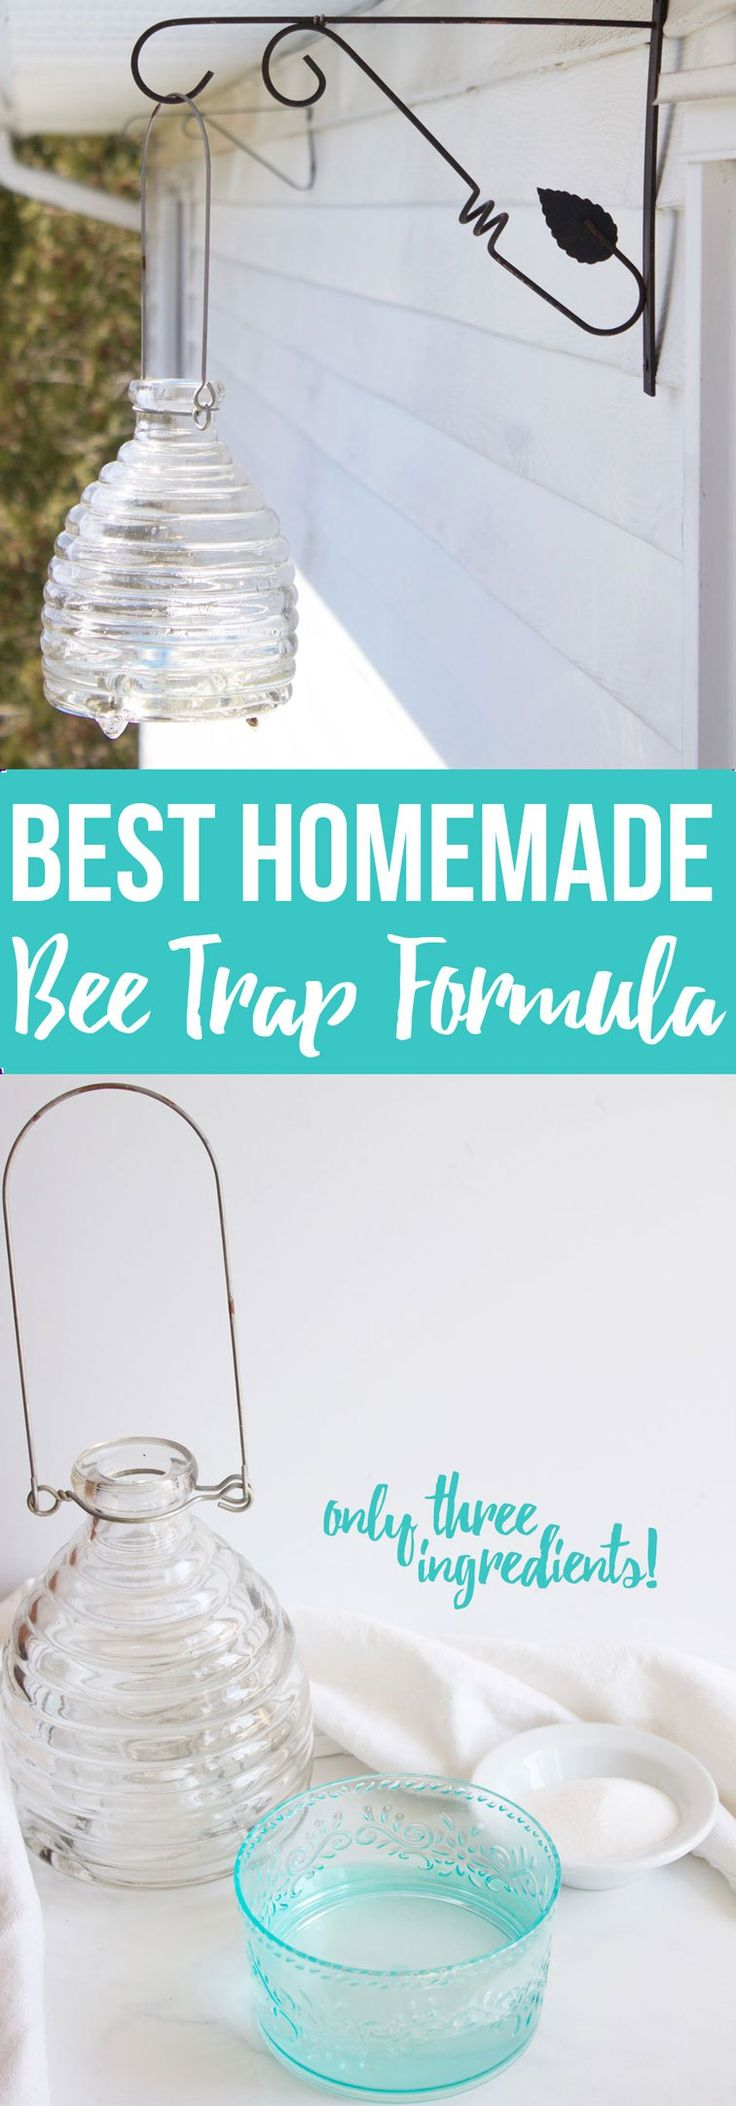 Best Homemade Bee Trap Formula! Only 3 ingredients!! - www.nikkisplate.com